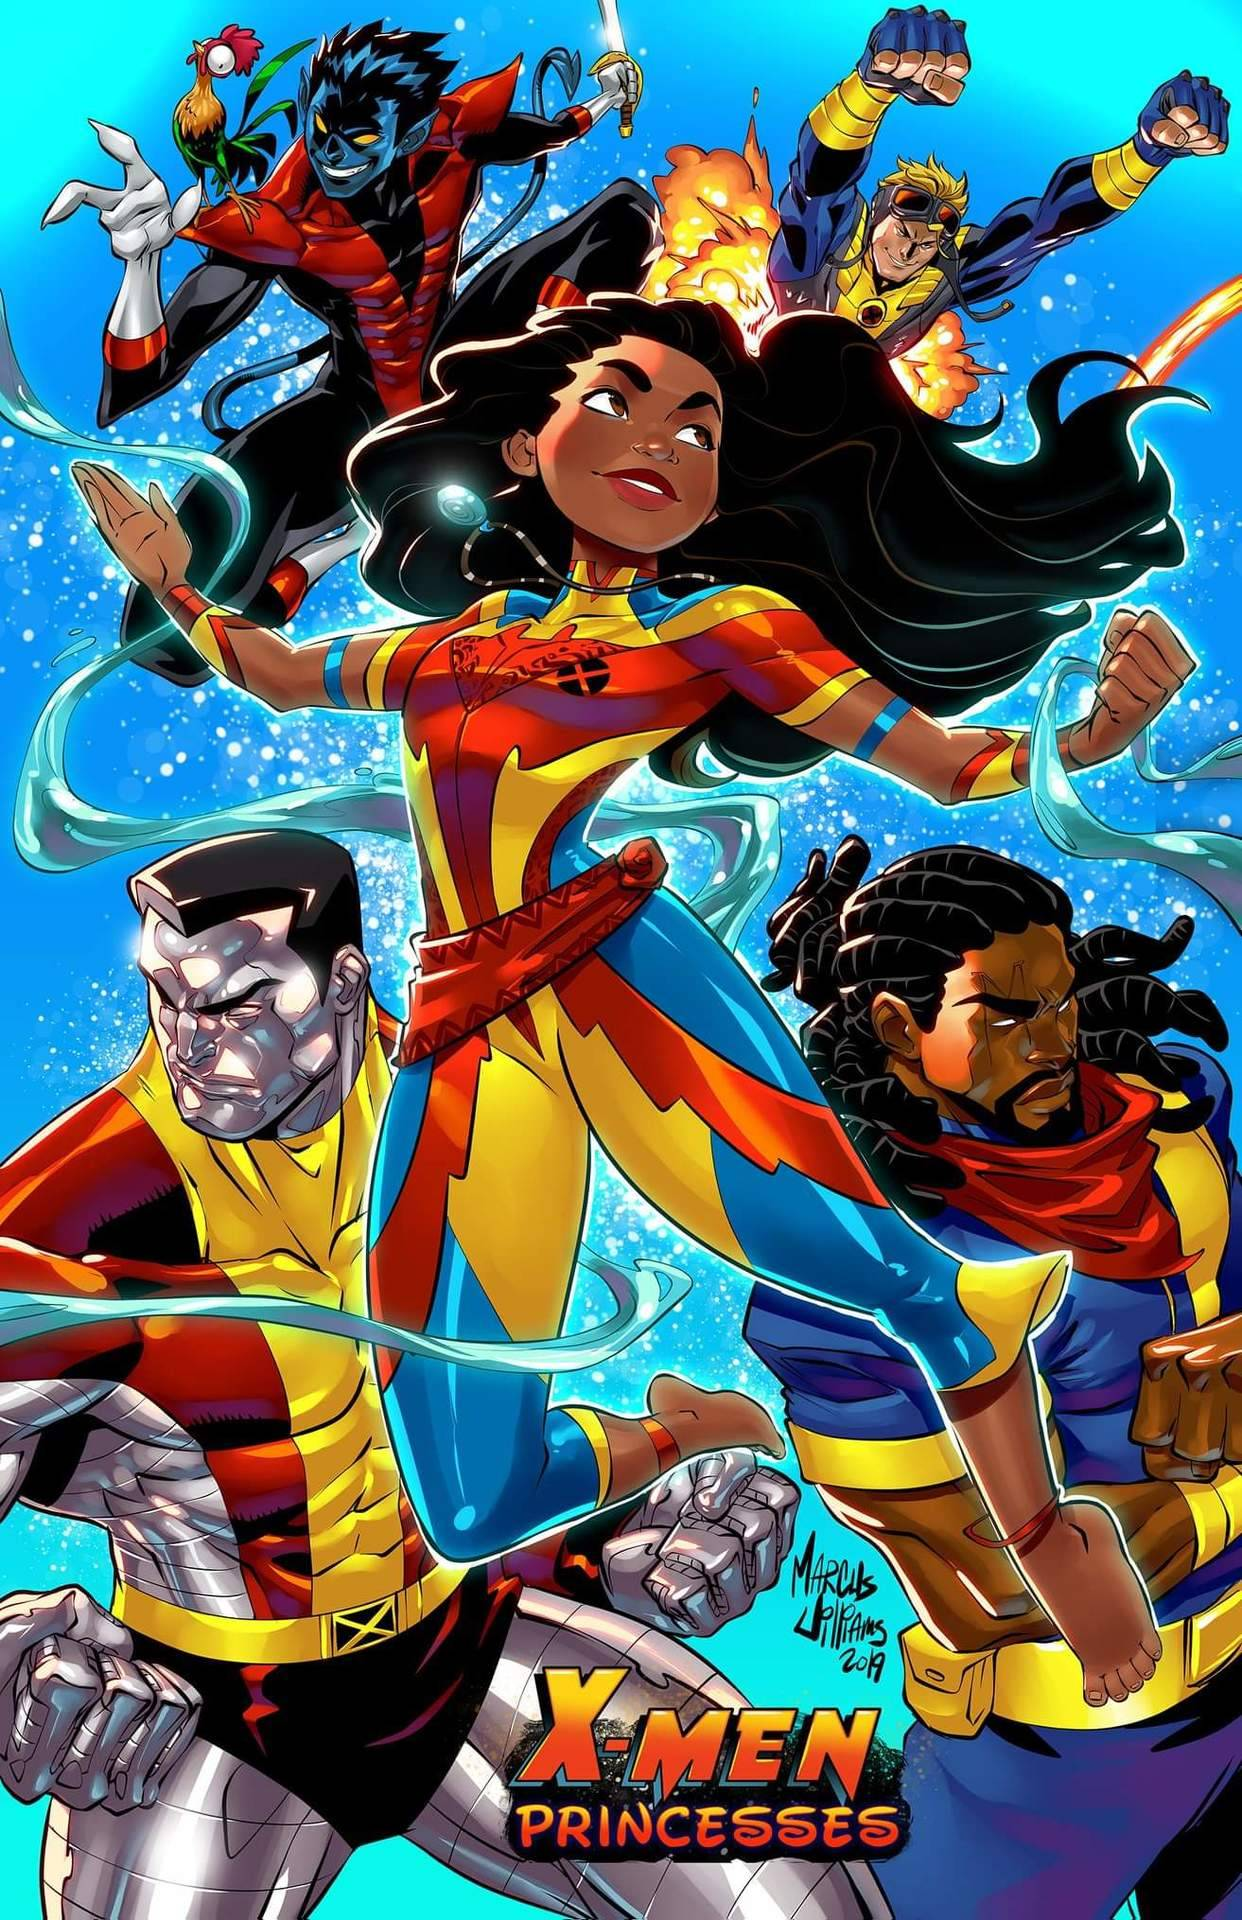 Bishop - Colossus - Noturno - Missil - Moana - Quando X-Men e Princesas Disney se encontram - MarcusTheVisual - Blog Farofeiros